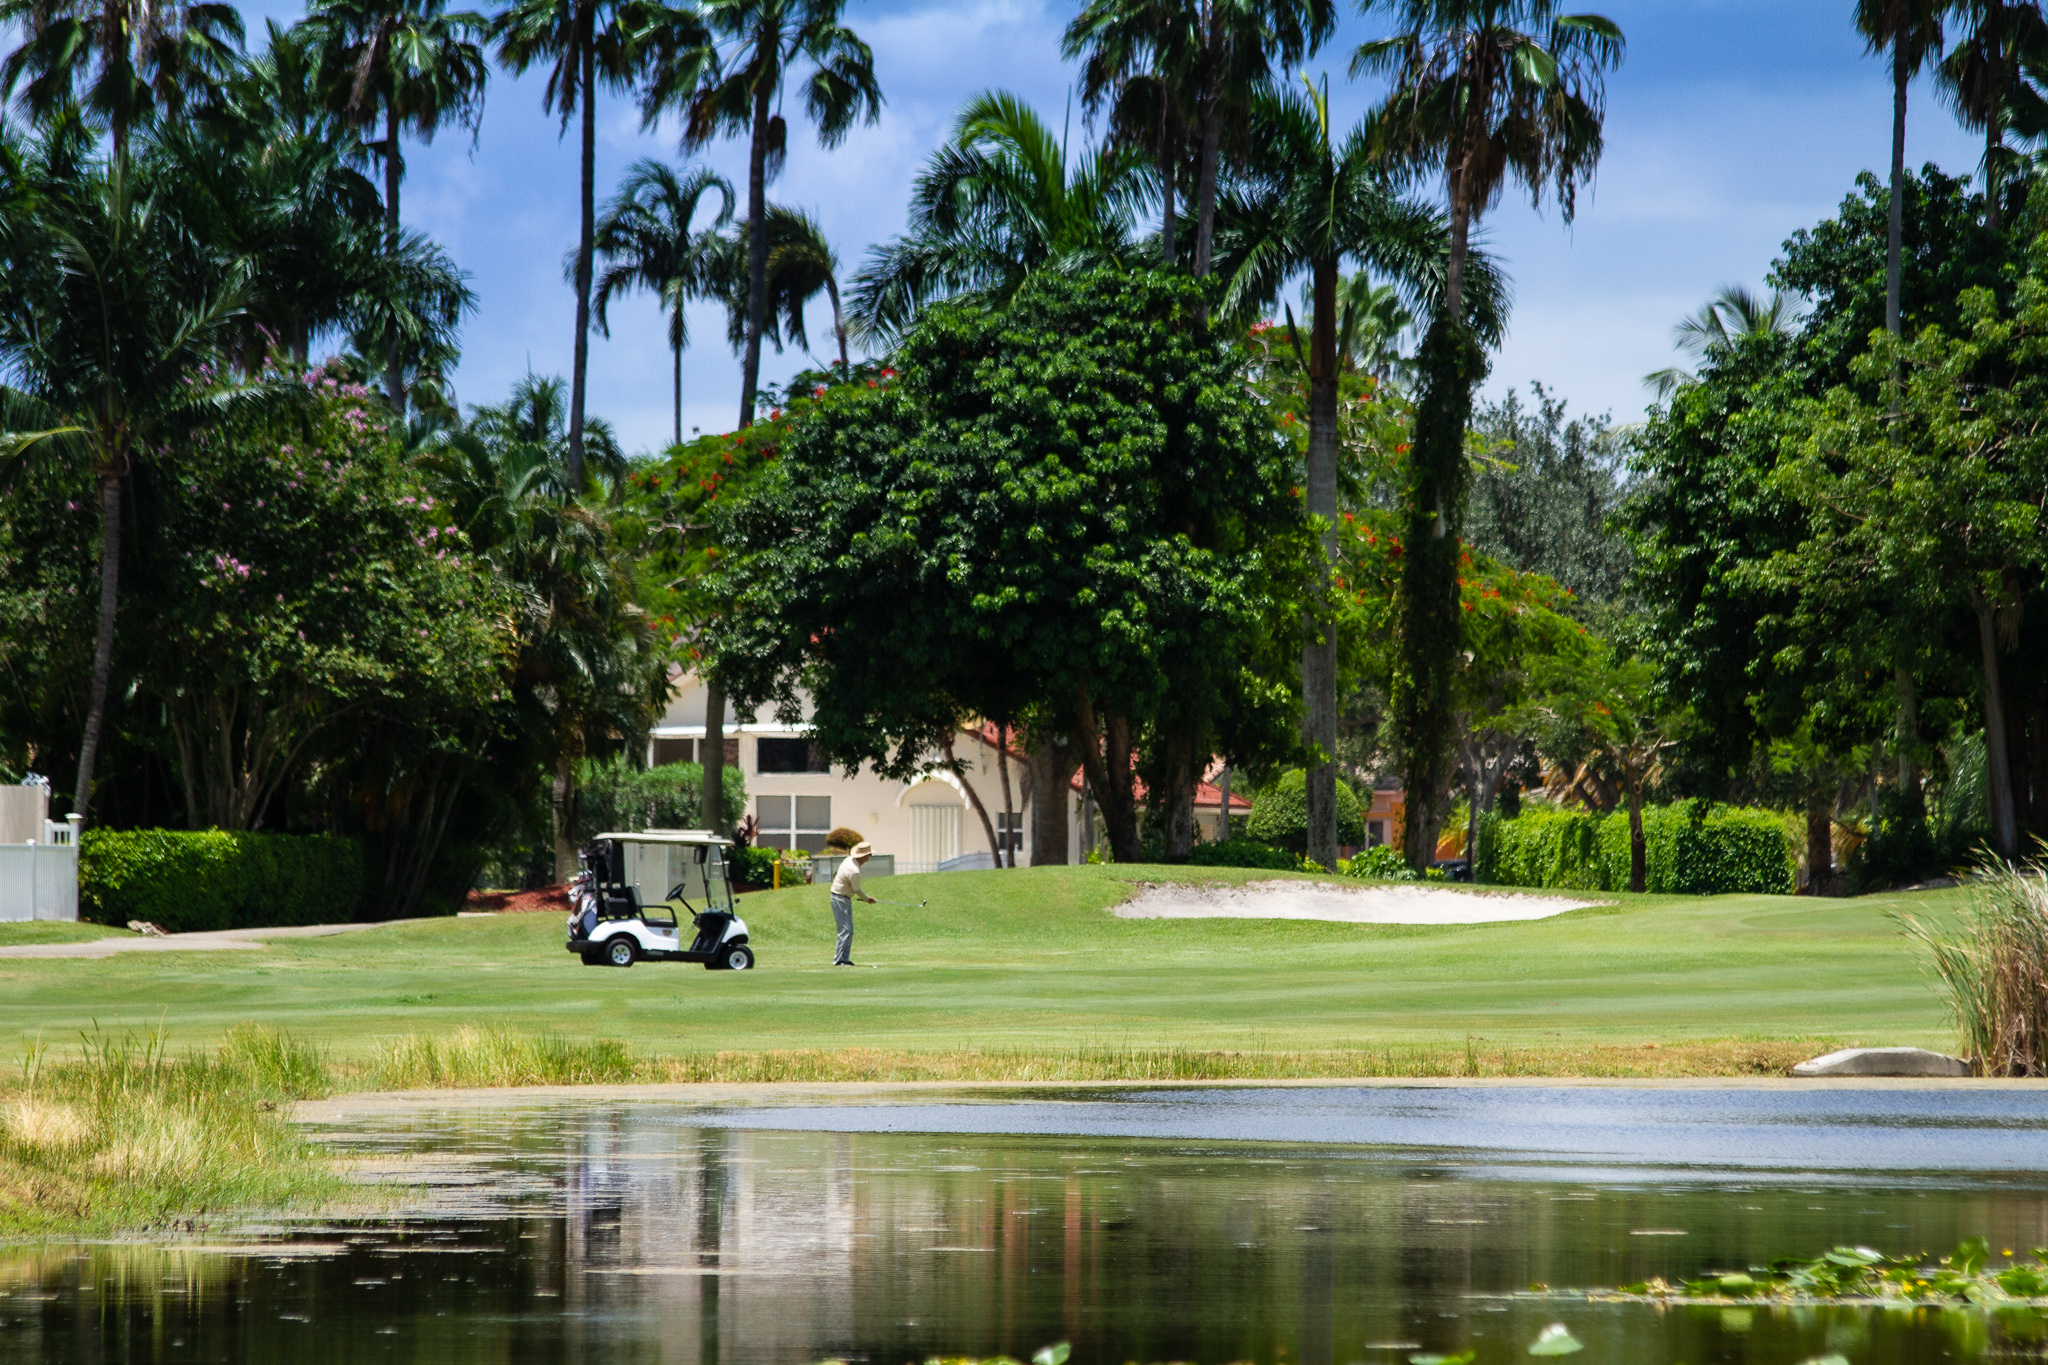 Grand Palms Golf Course